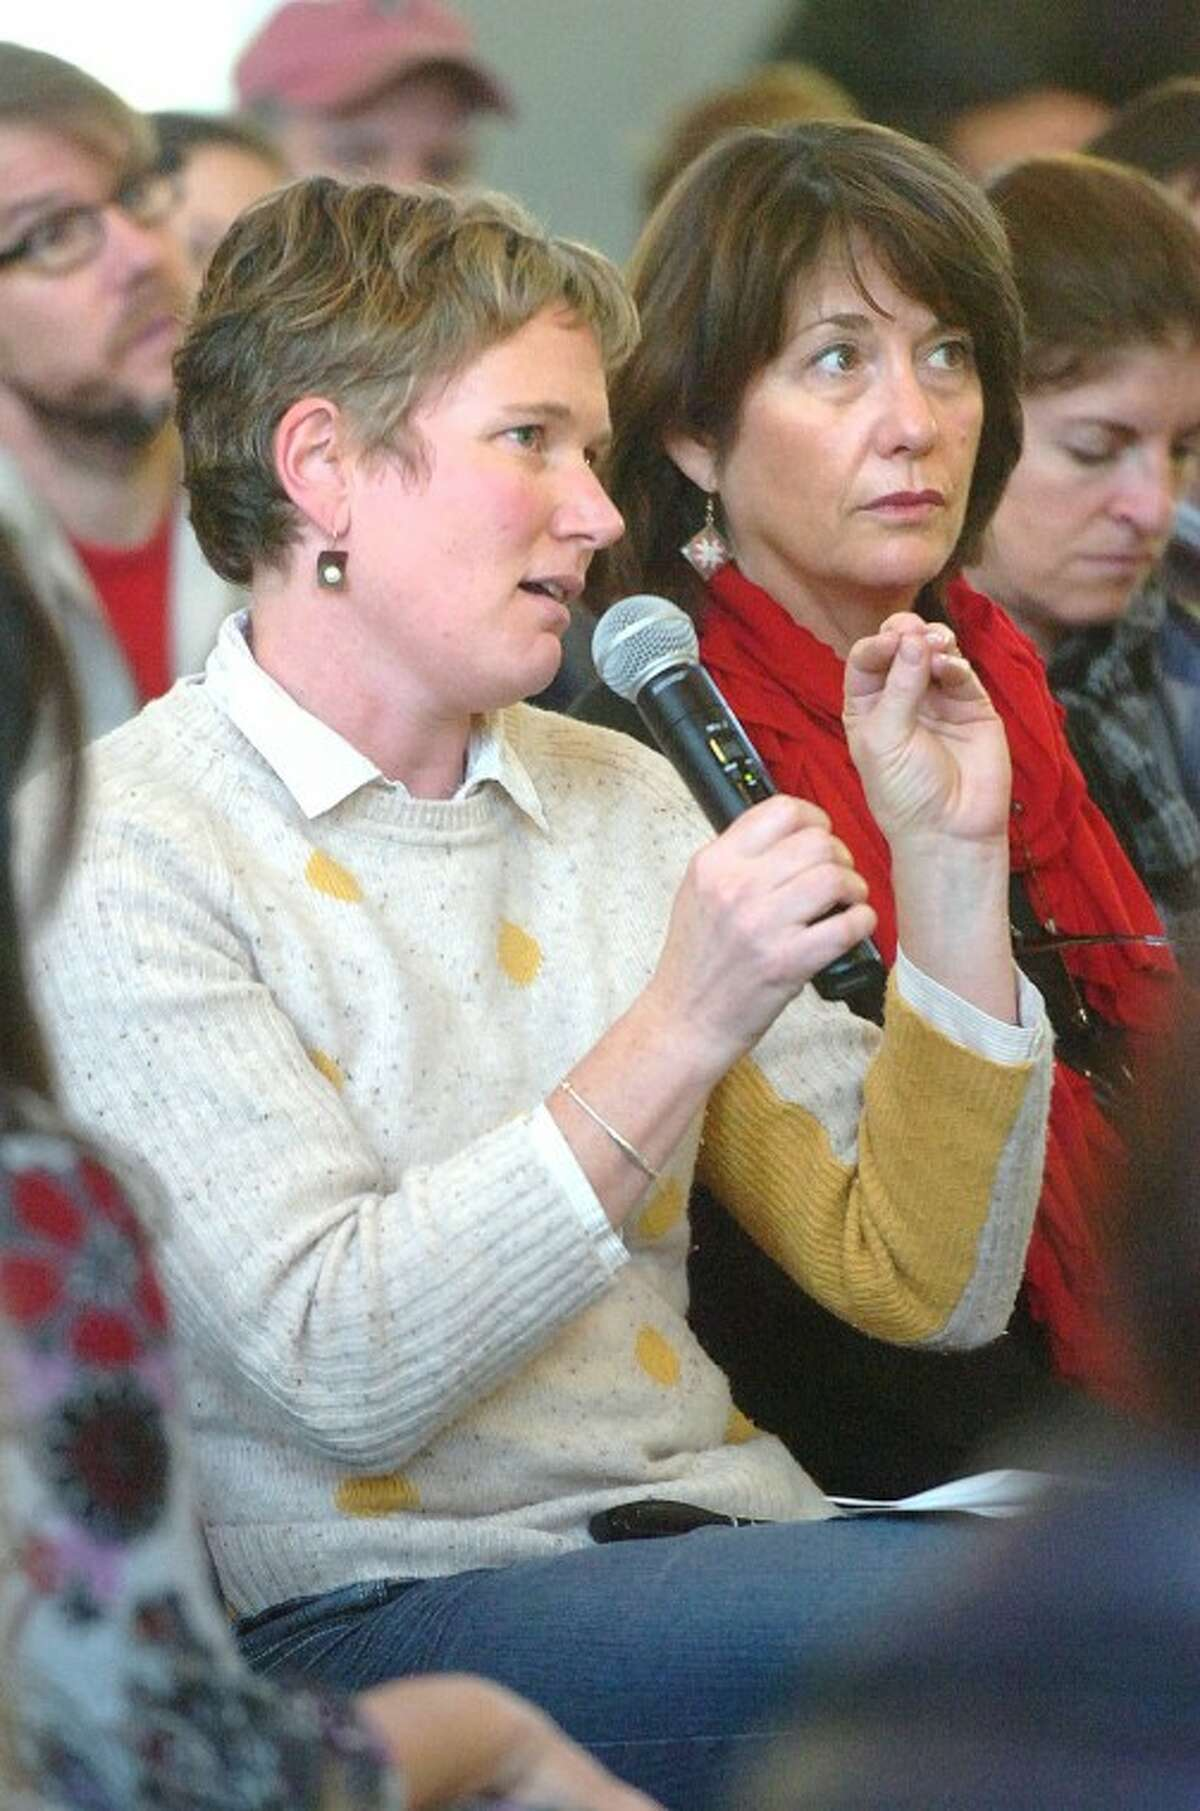 Hour Photo/Alex von Kleydorff. Bridgeport's Anne Watkins asks Jim Himes a question from the audience during a forum hosted by CT Against Gun Violence at Christ and Holy Trinity Church in Westport Monday.